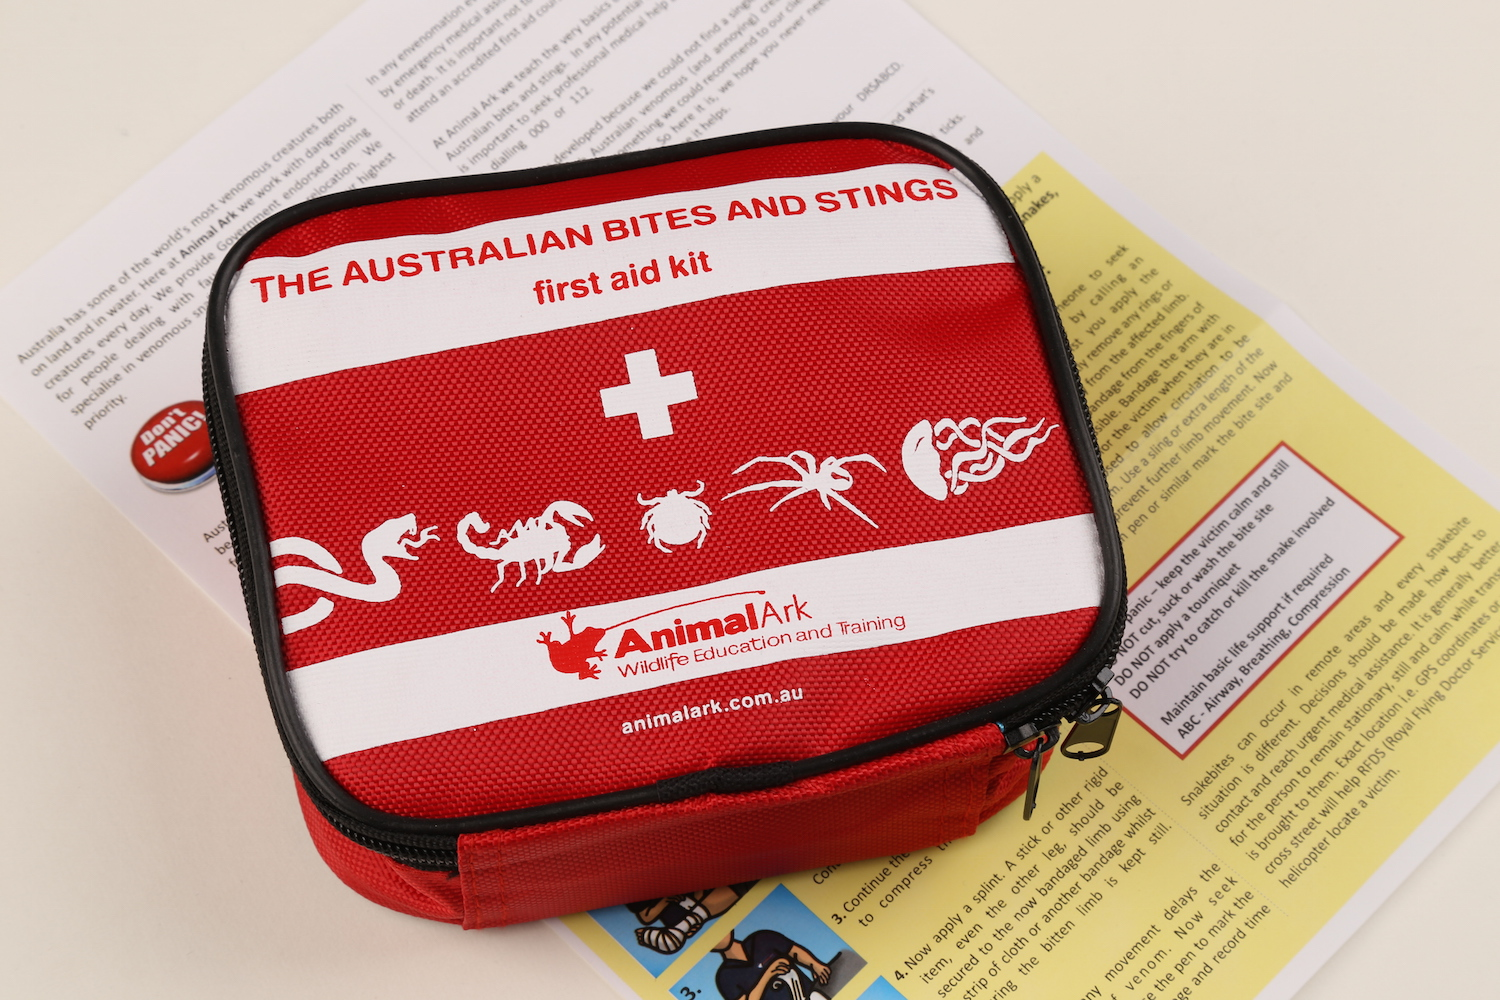 Australian bites and stings first aid kit